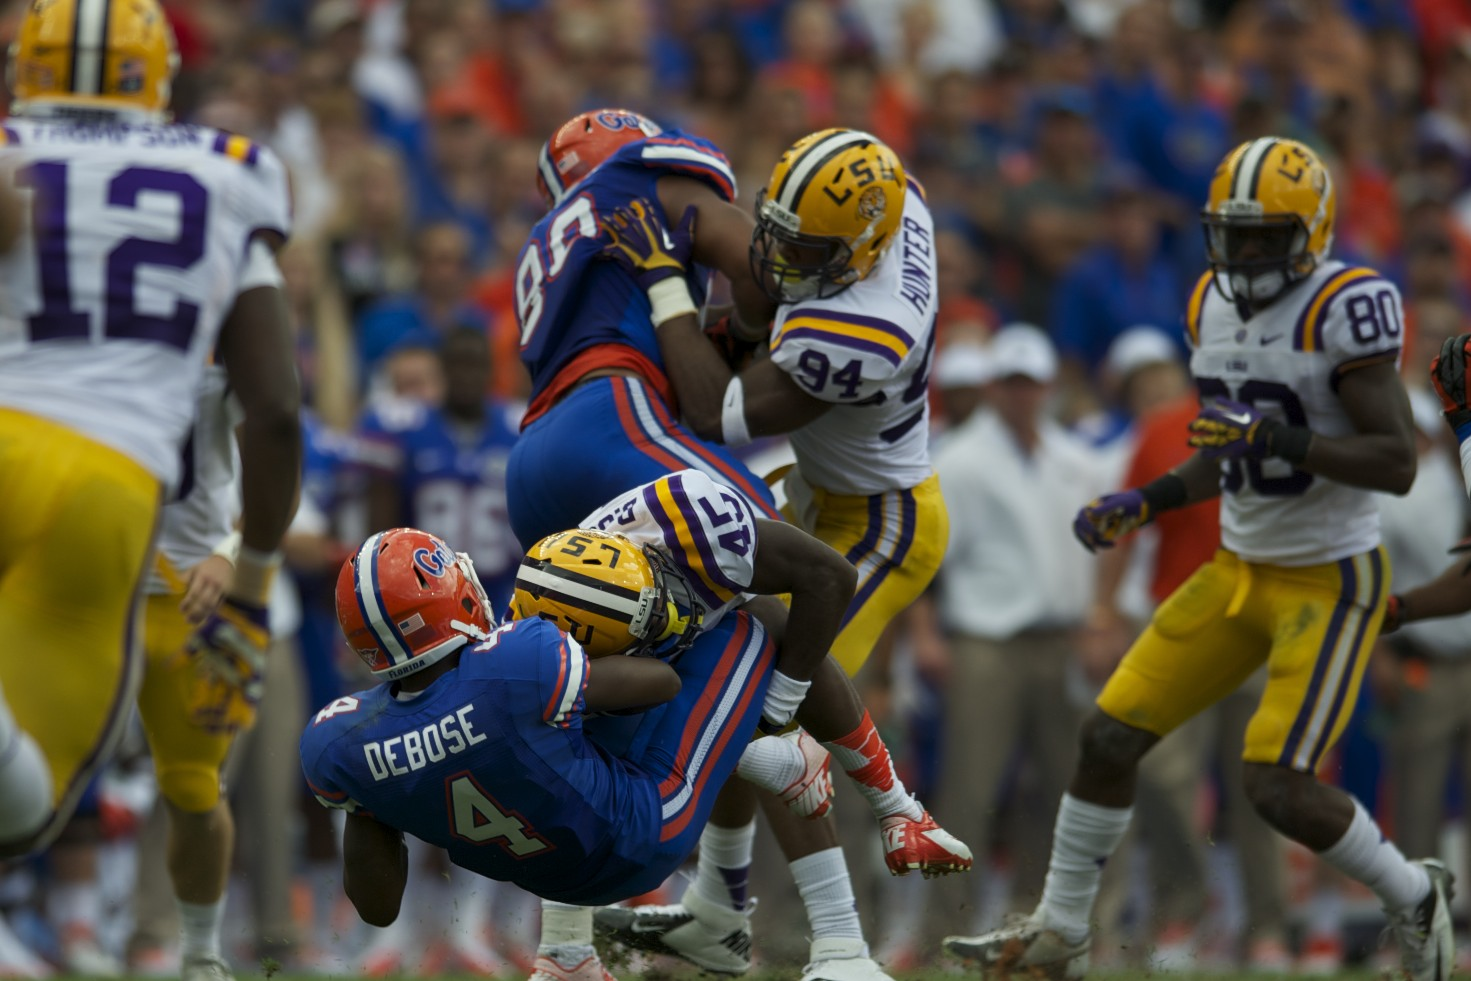 Andre Debose gets tackled by LSU defense in the first half during Saturday's game.